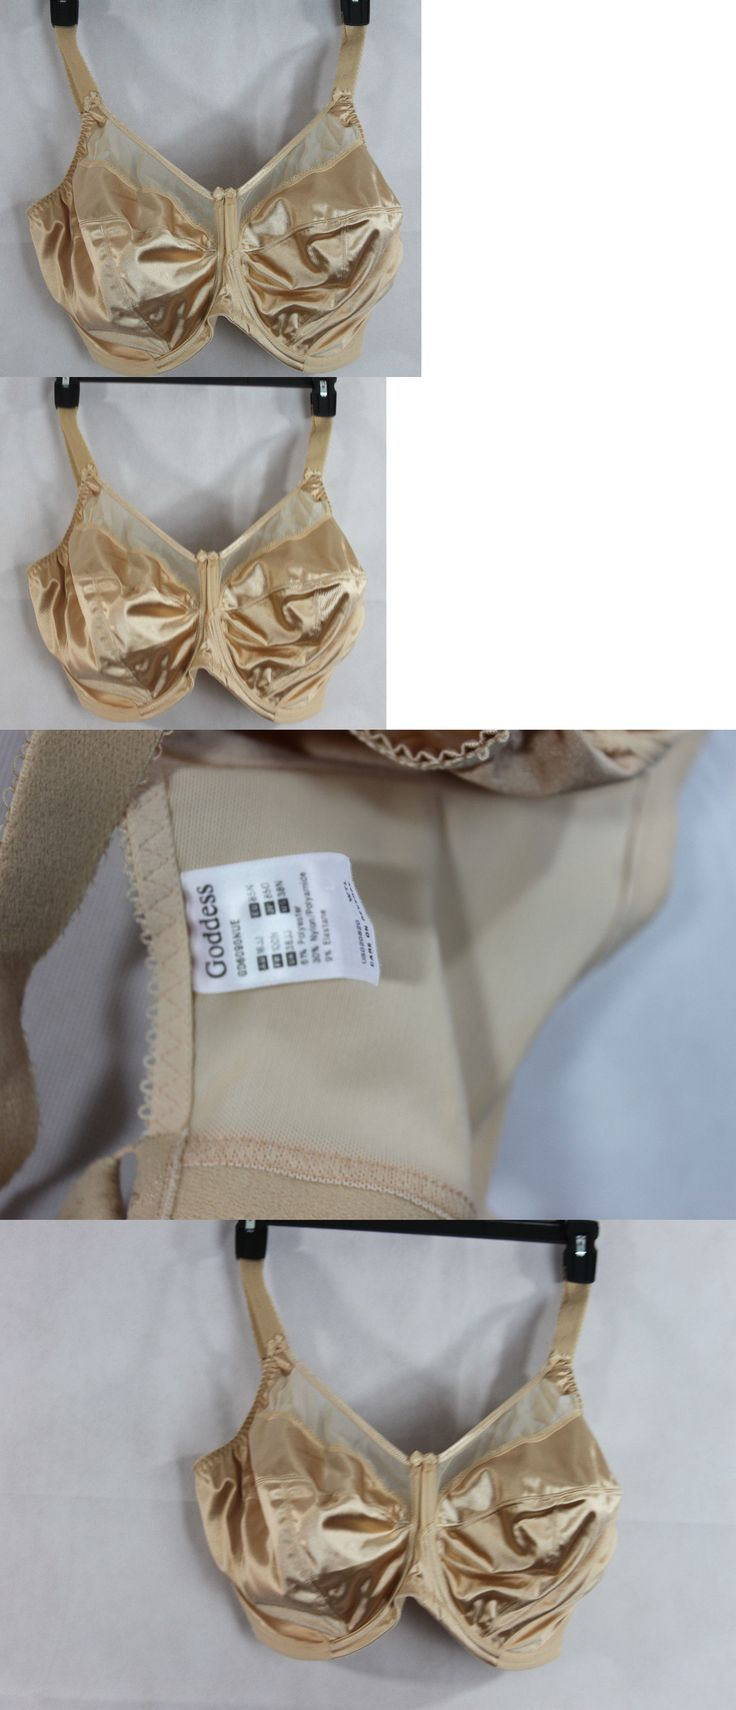 Bras and Bra Sets 63853: New Goddess Lingerie Keira Banded Underwire Full Cup Bra Nude Size 38N -> BUY IT NOW ONLY: $31.99 on eBay!